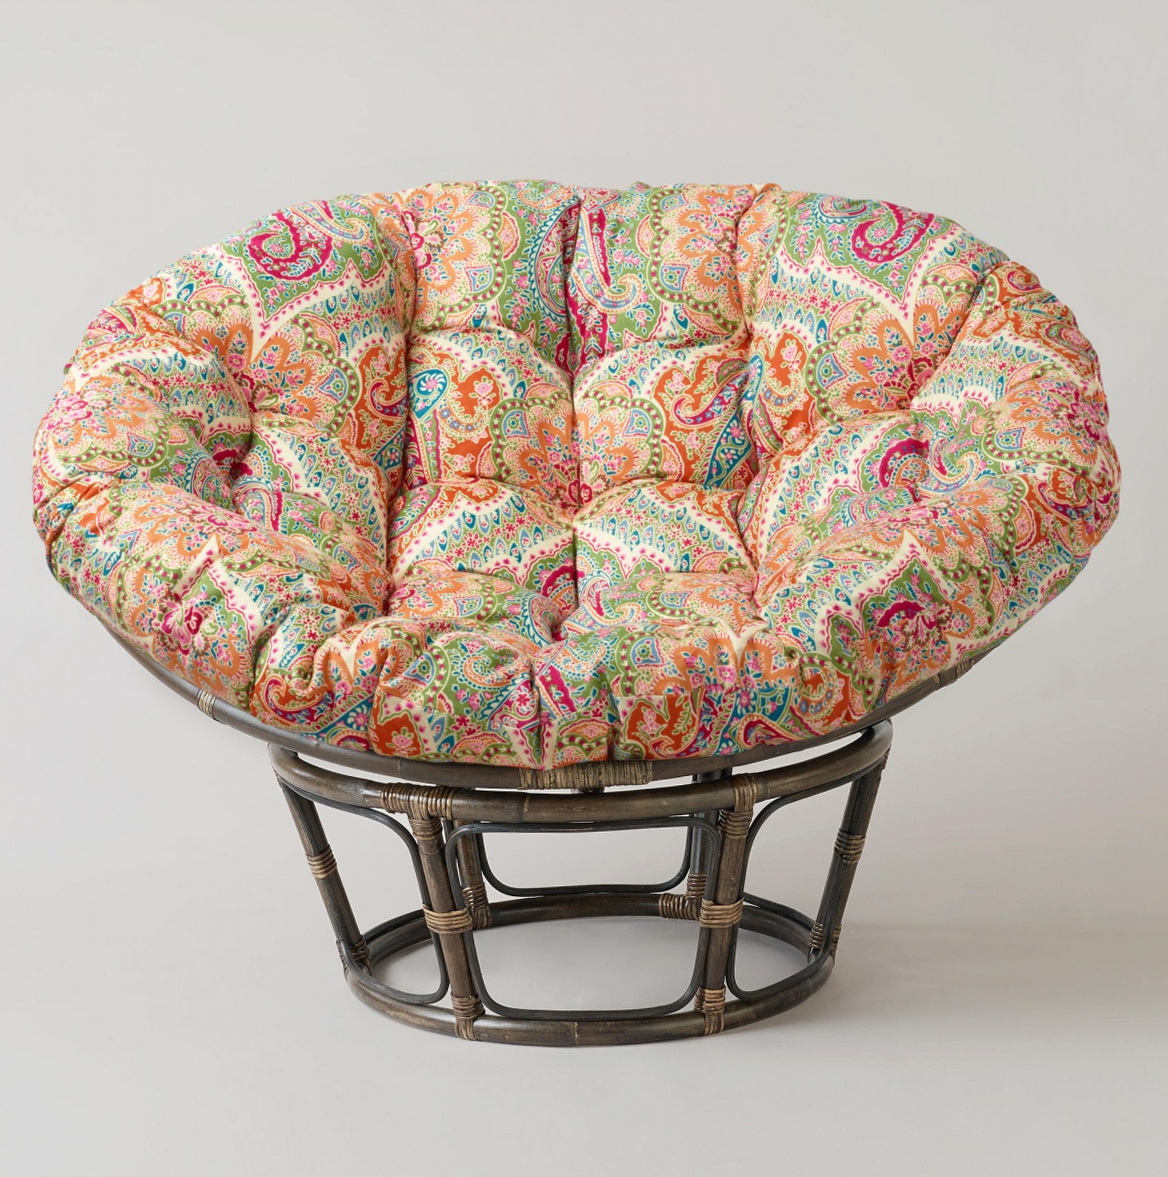 Seat Cushion Covers For Chairs